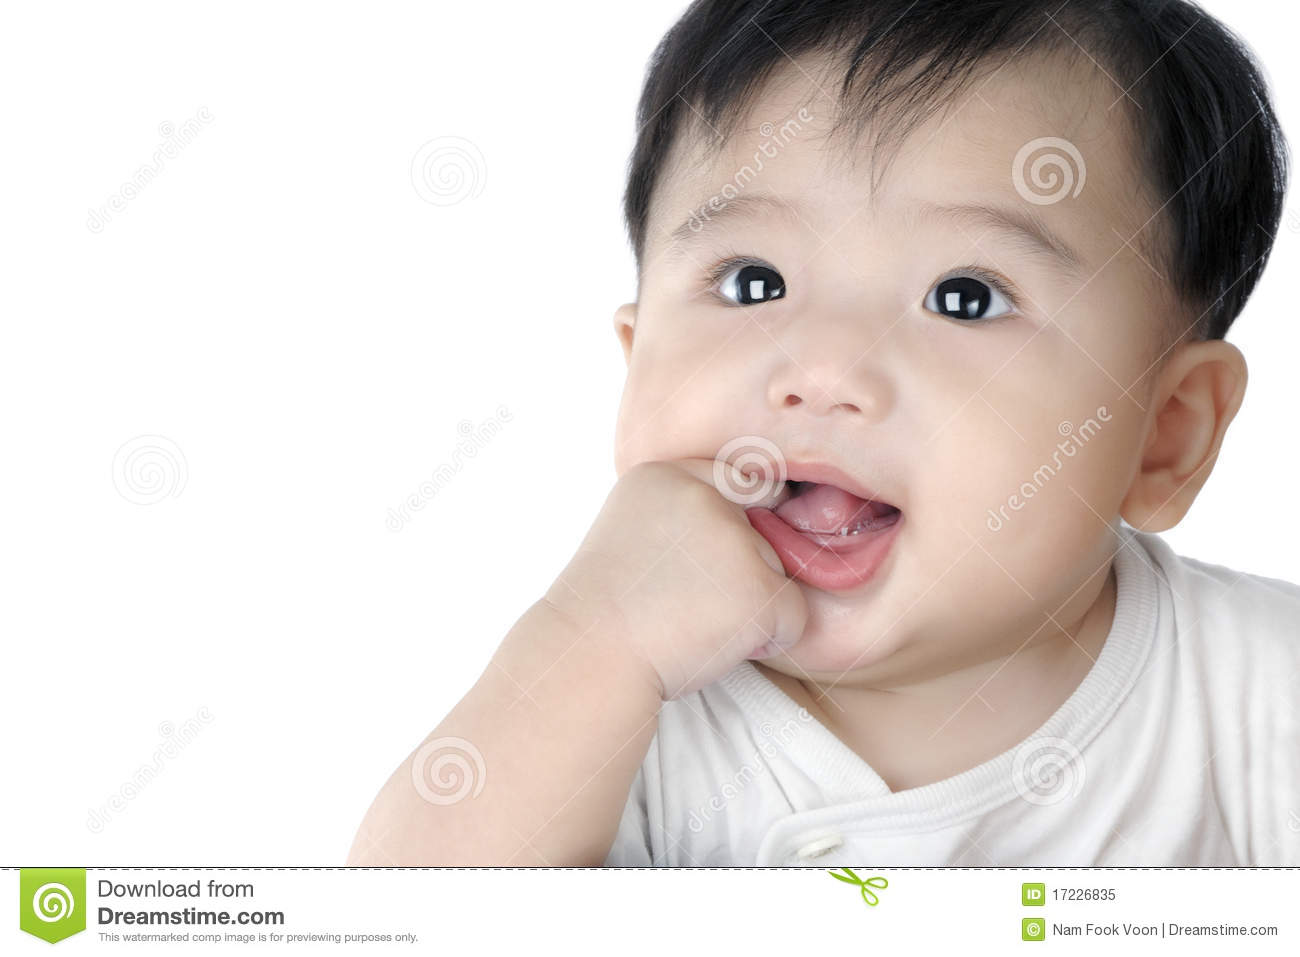 Adorable infant baby putting finger into his mouth isolated on white